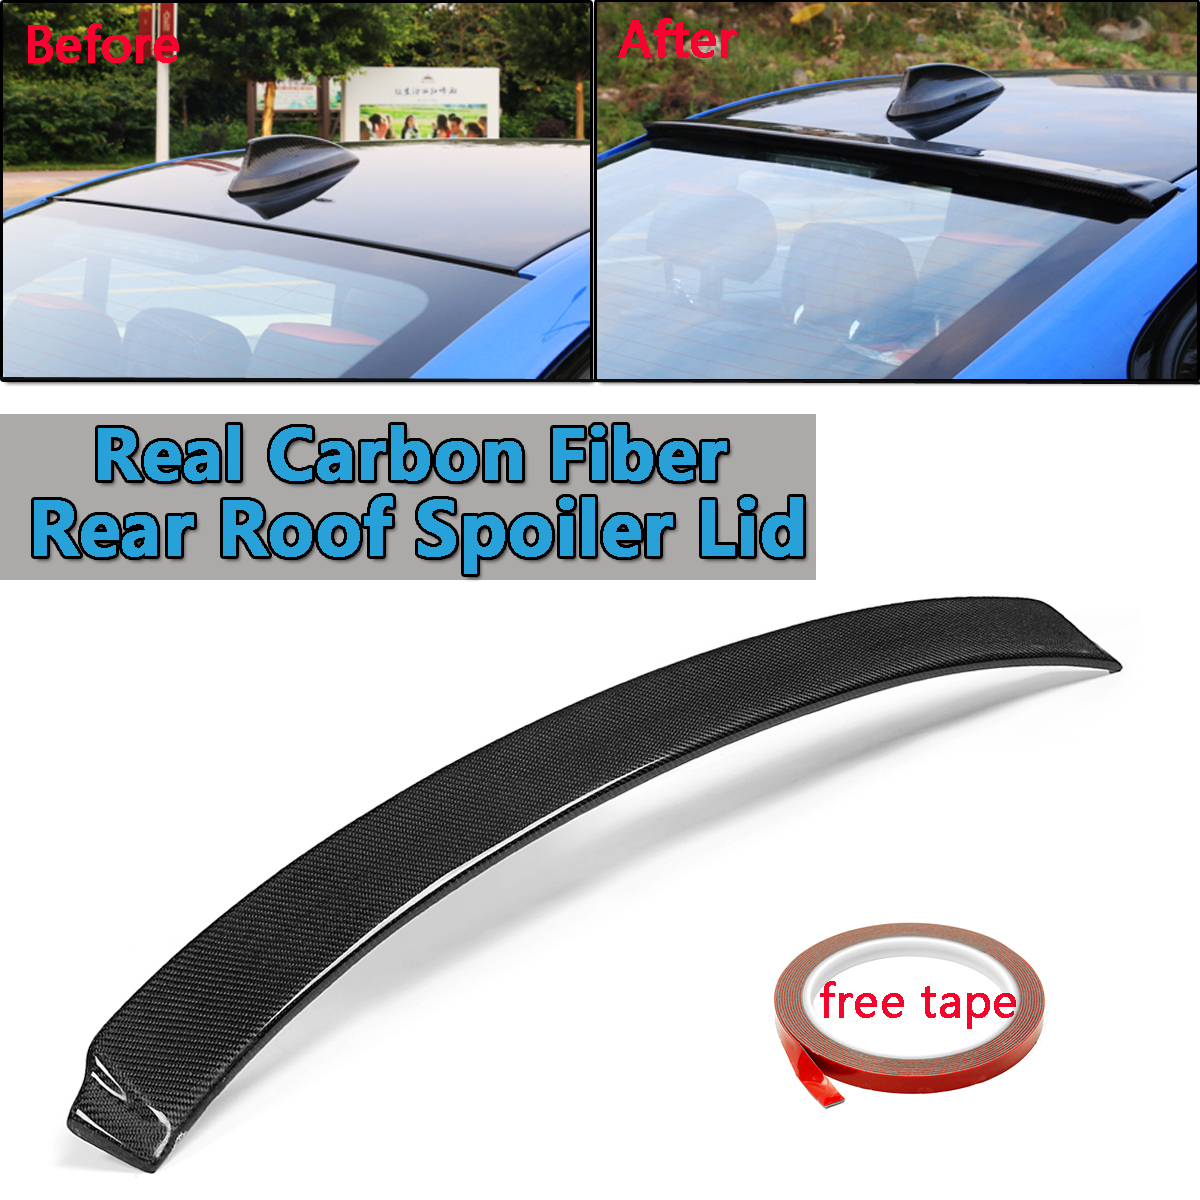 New Real Carbon Fiber Roof Spoiler Lid Wings For BMW 3 Series F30 2013-2017 Rear Wing Spoiler Rear Trunk Roof Wing Glossy Black for 12 16 bmw 3 series f30 4dr trunk spoiler oem painted match a83 glacier silver